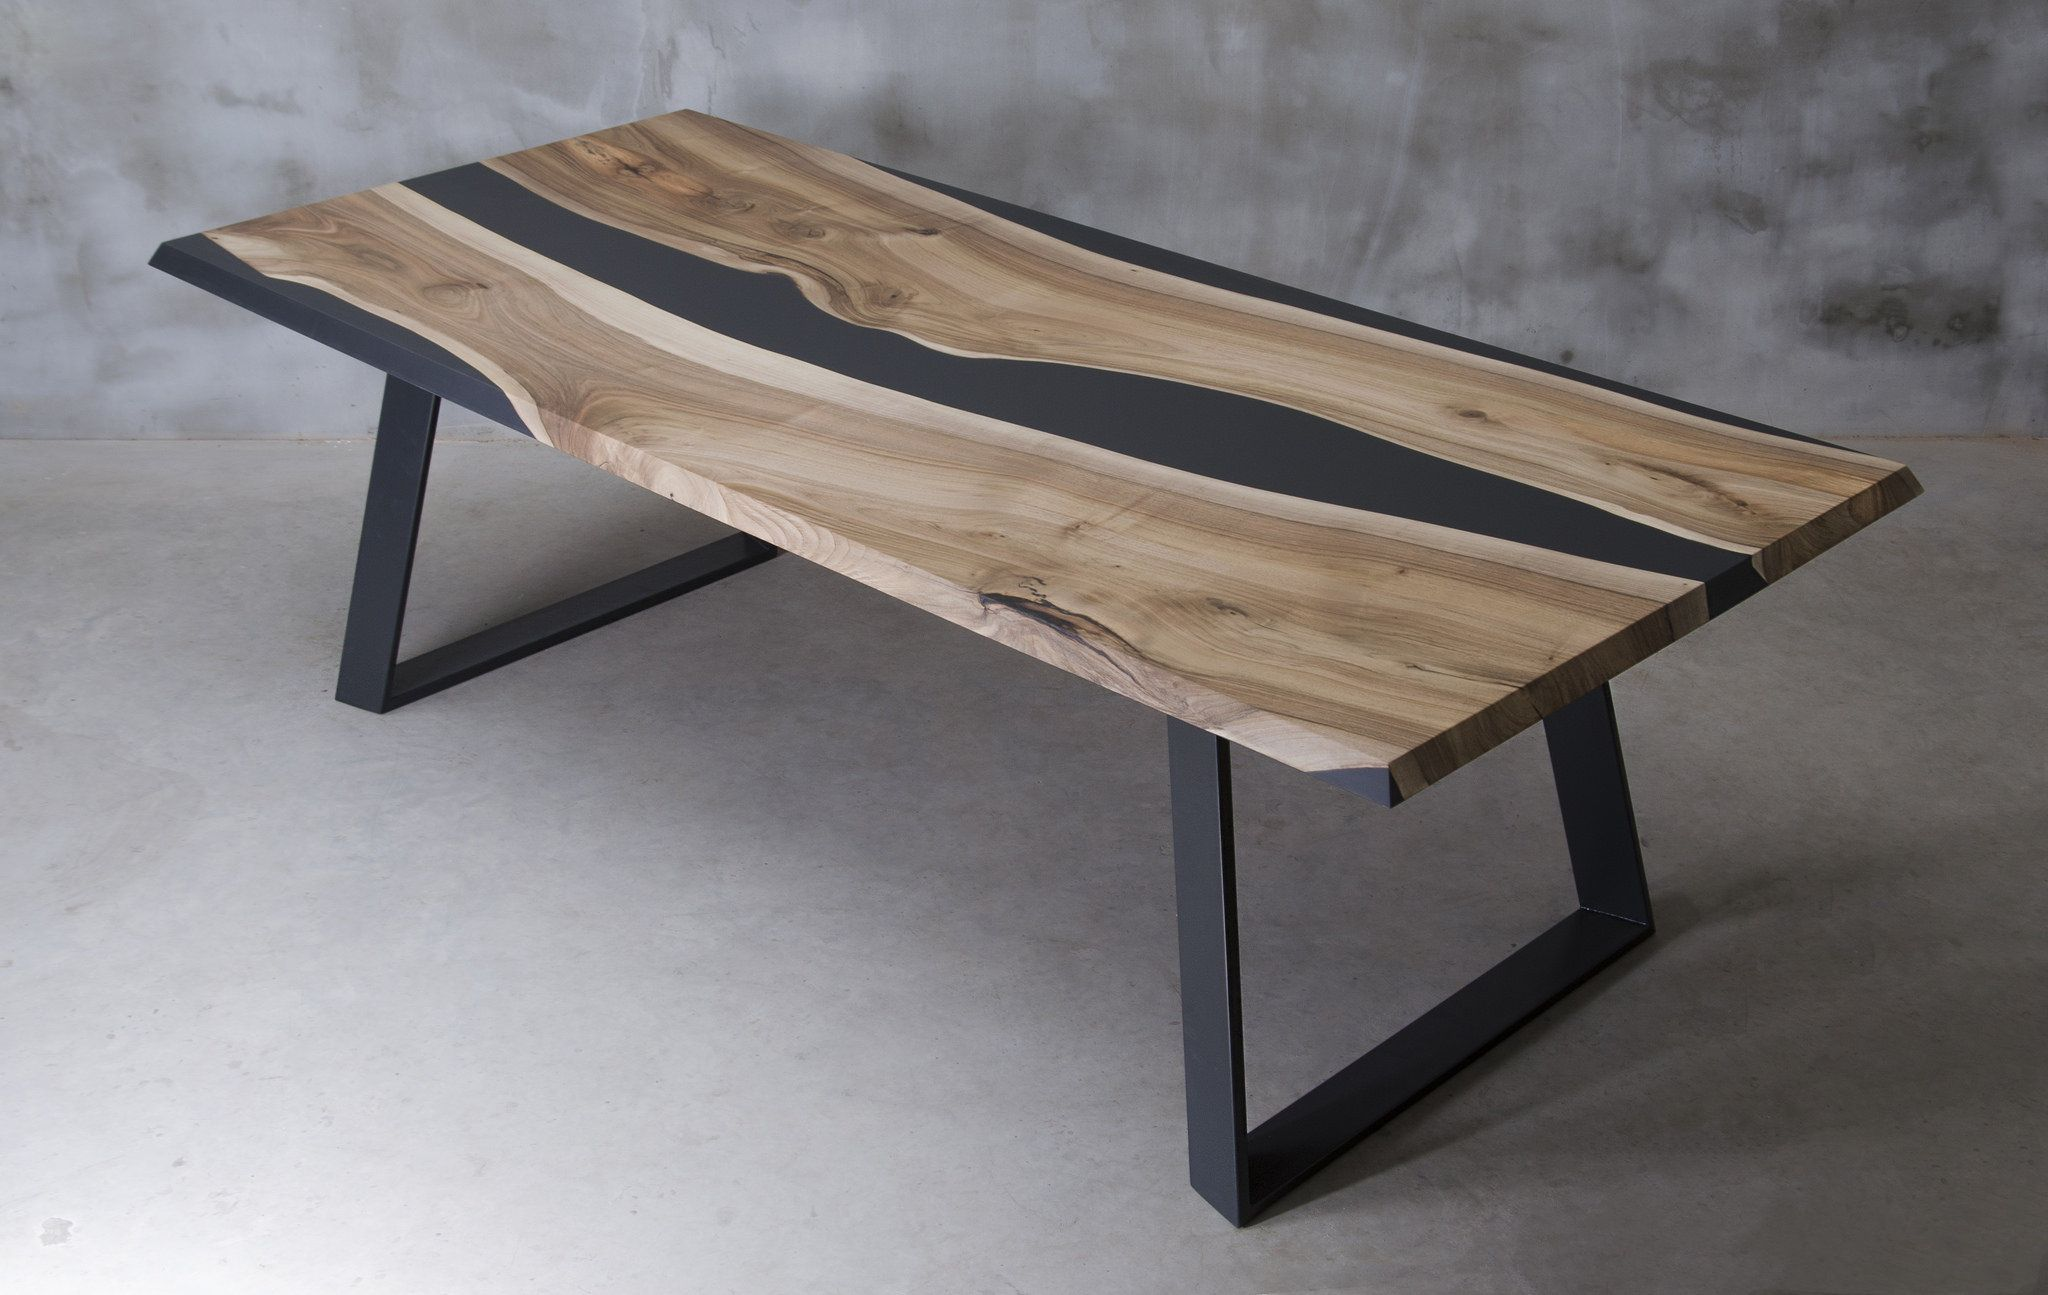 Live Edge Dining Table Epoxy Resin Table Epoxy Walnut Table River Black Matte Table River Table Black Resin Table Live Edge Dining Table Dining Furniture